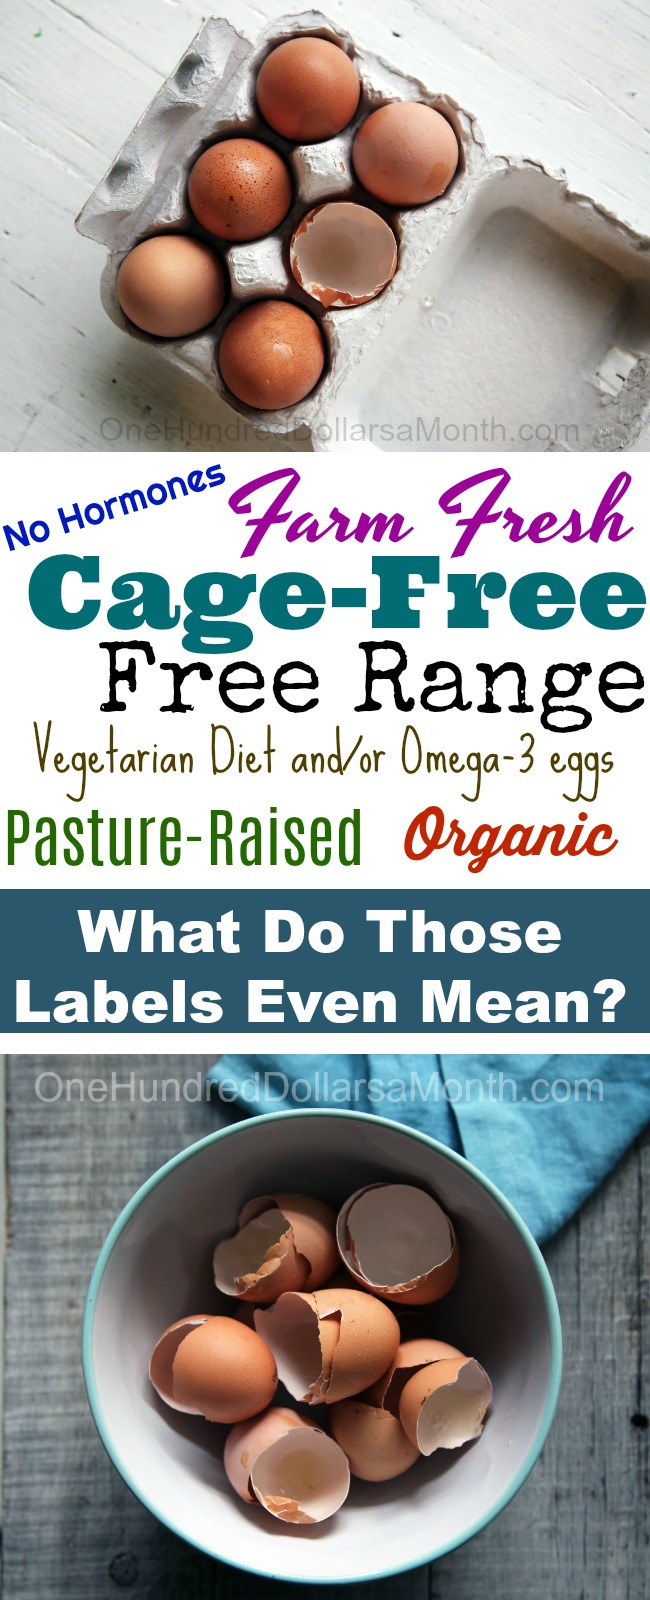 Buying Eggs From the Grocery Store – What Do the Labels Even Mean?